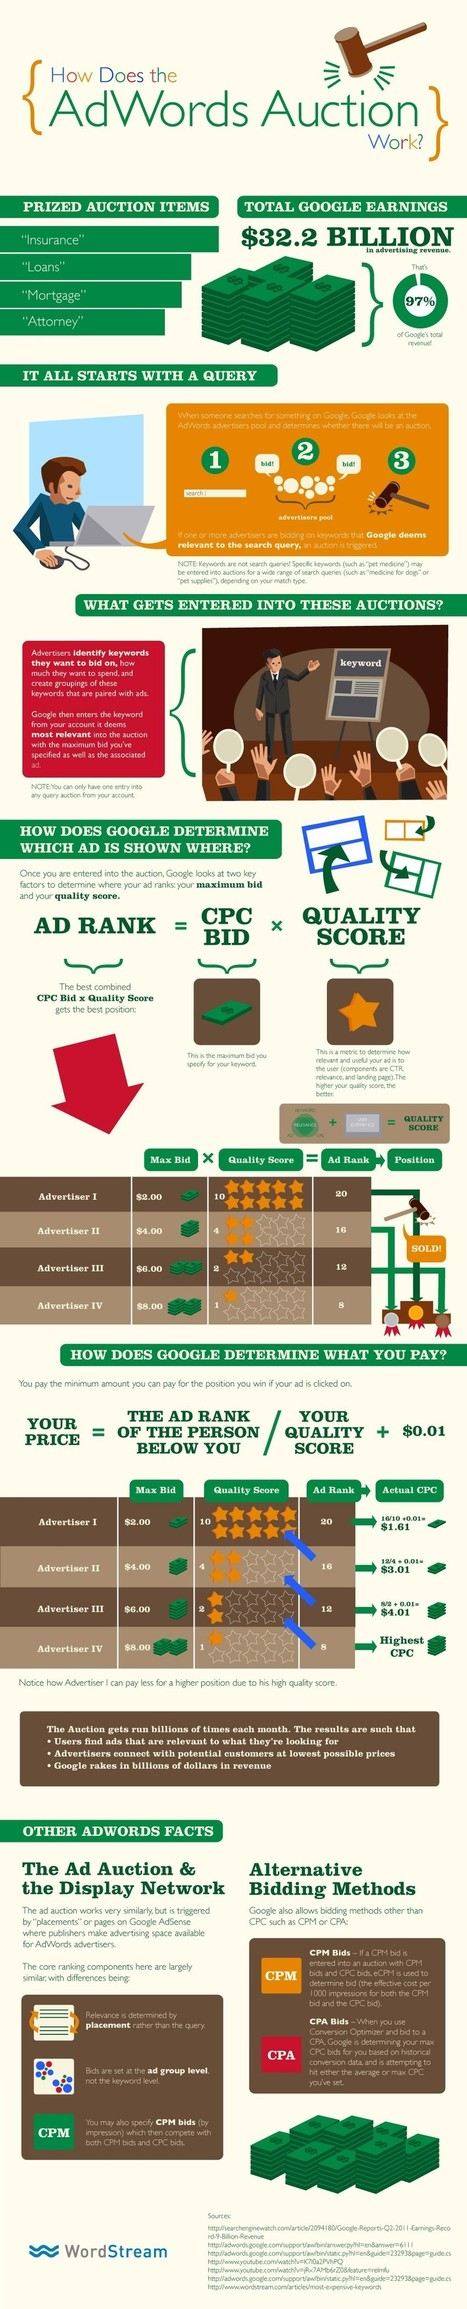 Google Billion Dollar Adword Auction Secrets Revealed | Infographics | The Best Infographics | Scoop.it